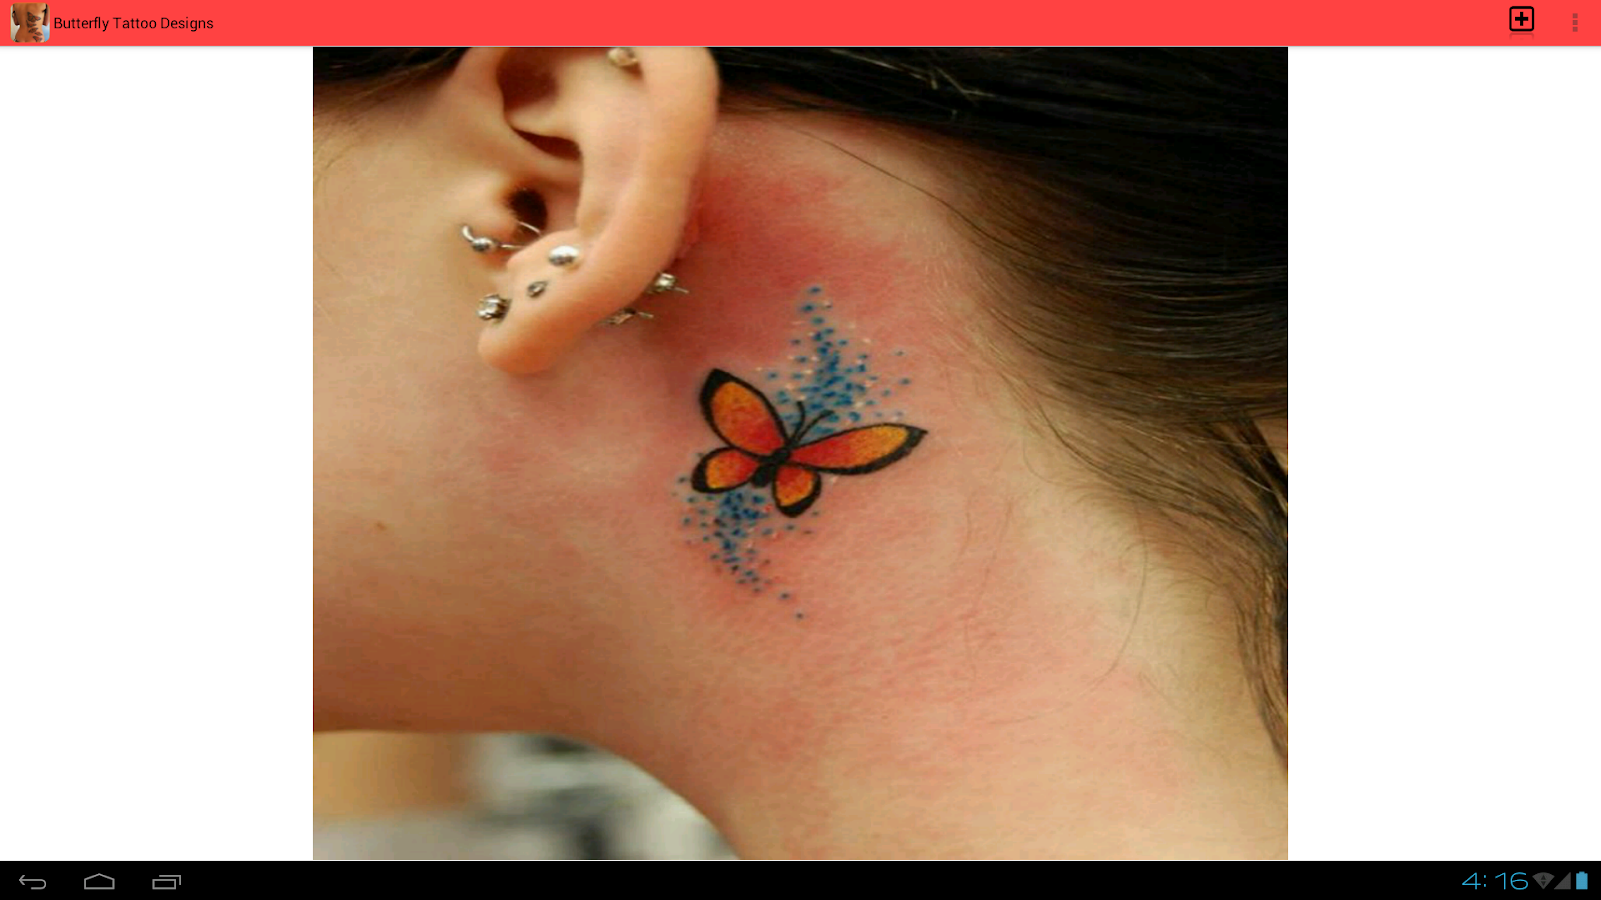 butterfly tattoo designs android apps on google play. Black Bedroom Furniture Sets. Home Design Ideas